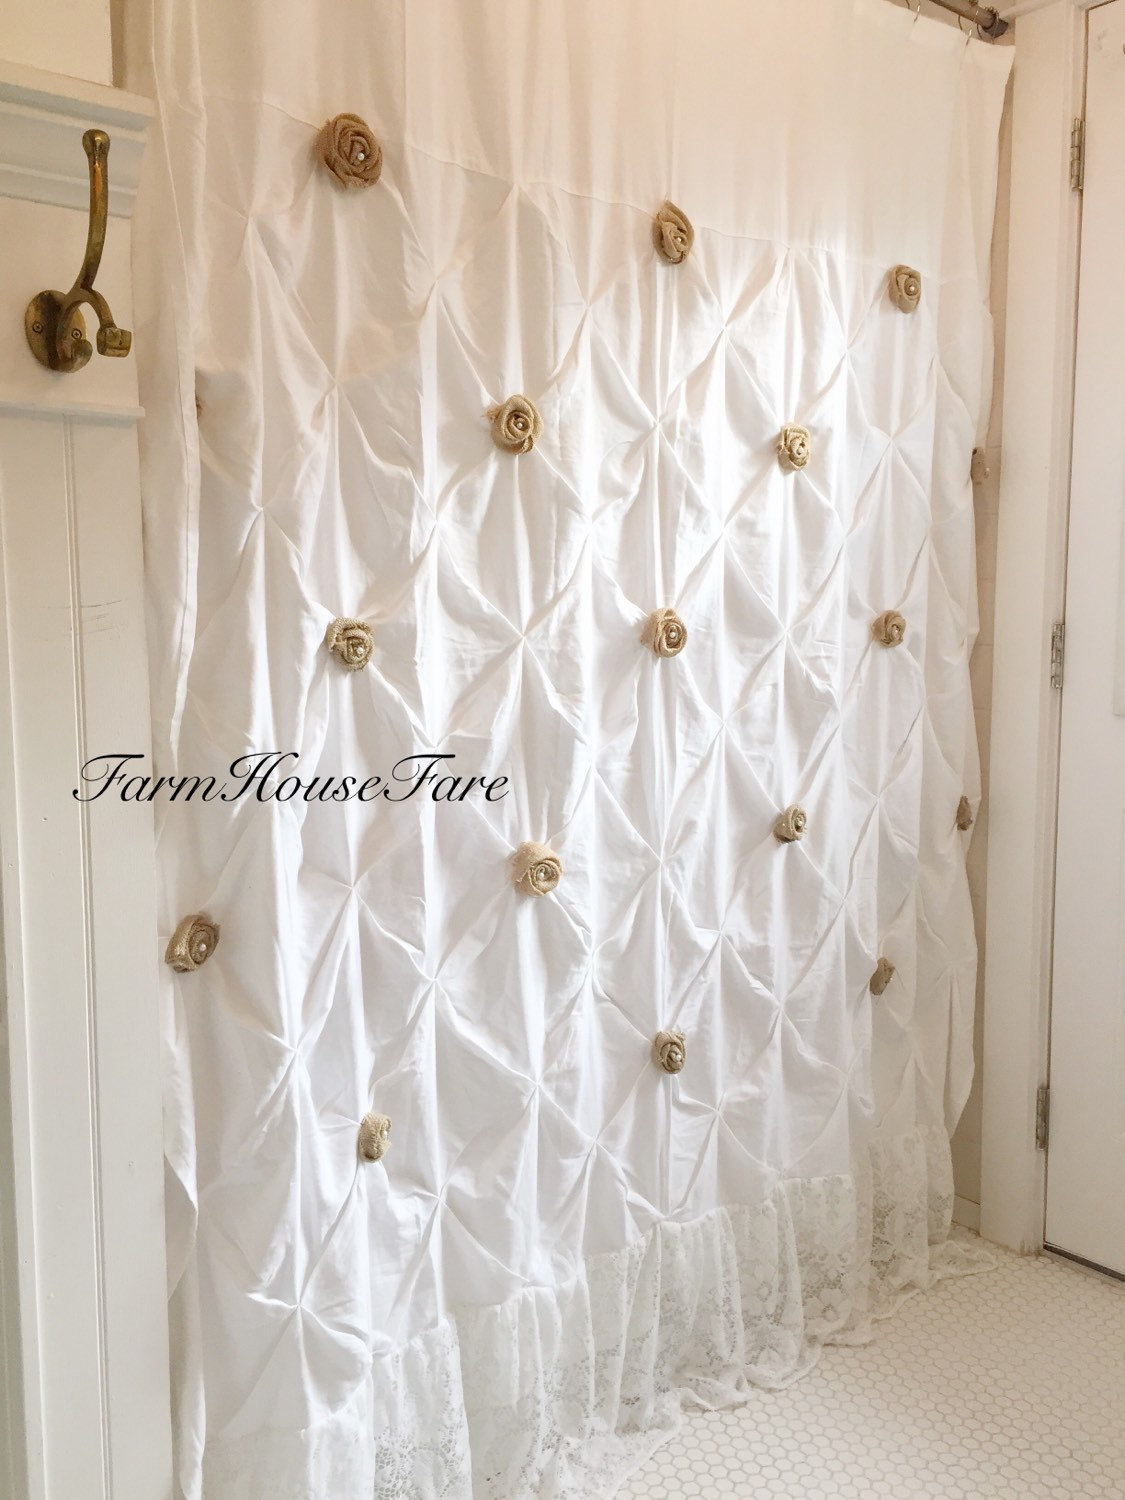 Burlap Shower Curtains And Muslin Ruffled Curtain For Proportions 1125 X 1500